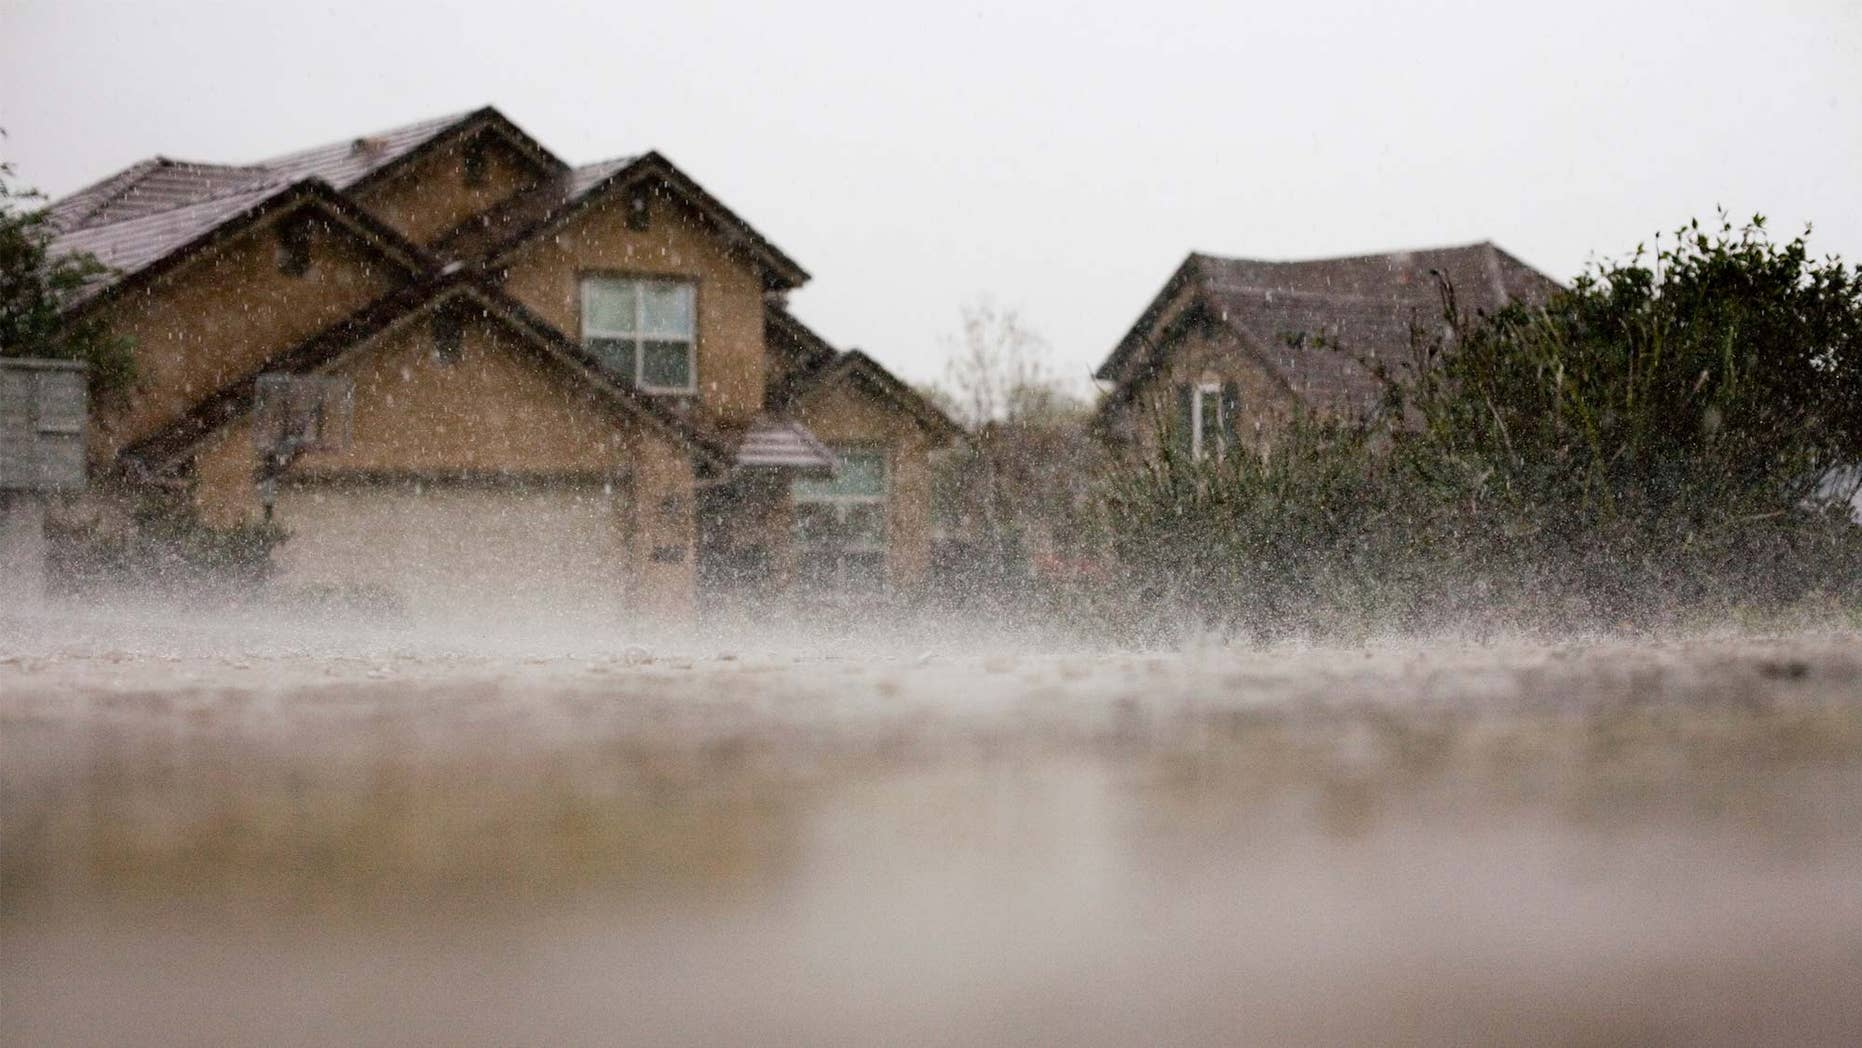 My Home Was Damaged in a Storm. How Long Will It Take for My Insurance to Pay?